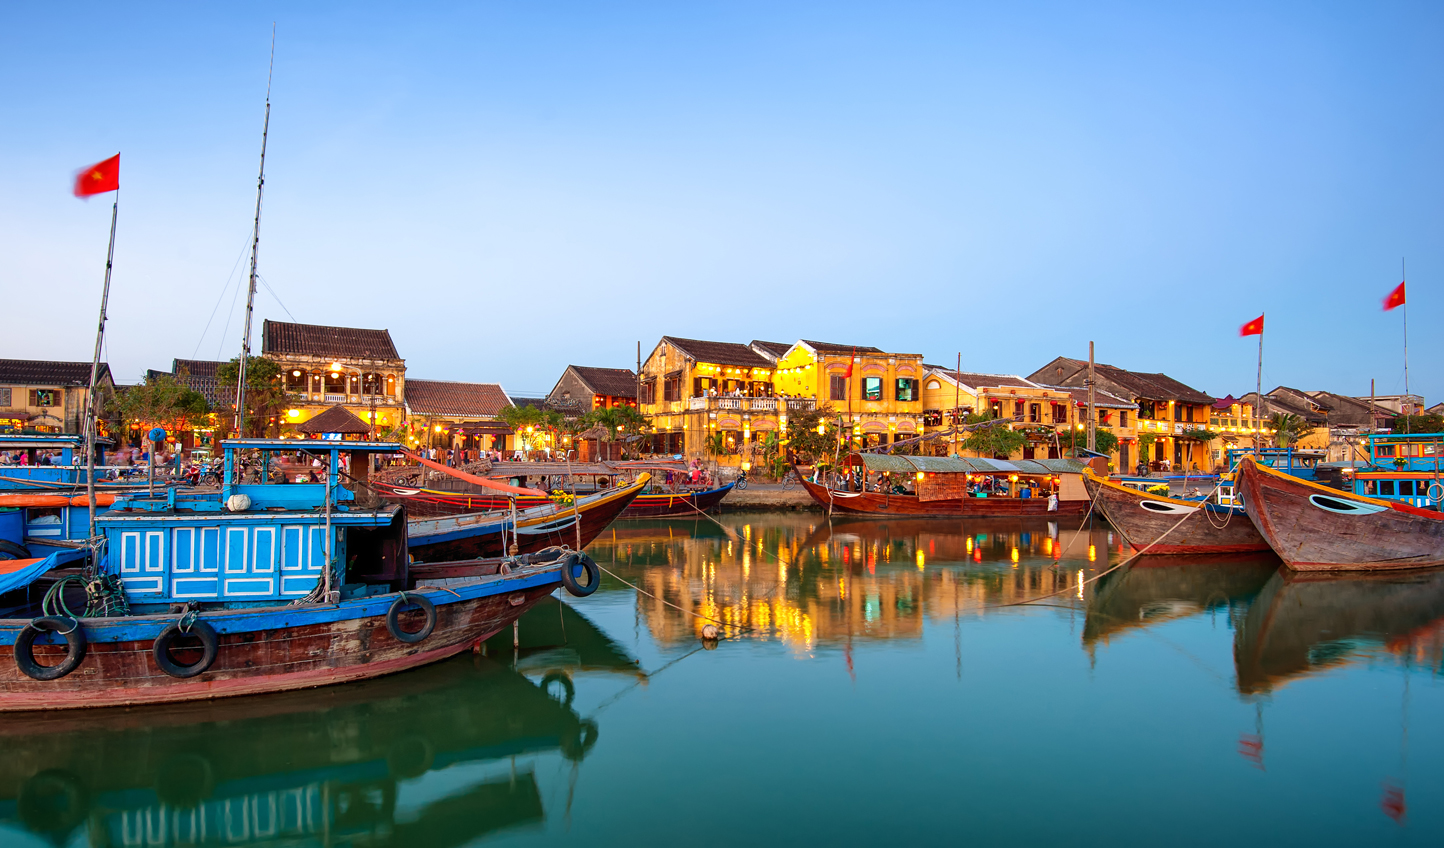 Explore the heritage of Hoi An